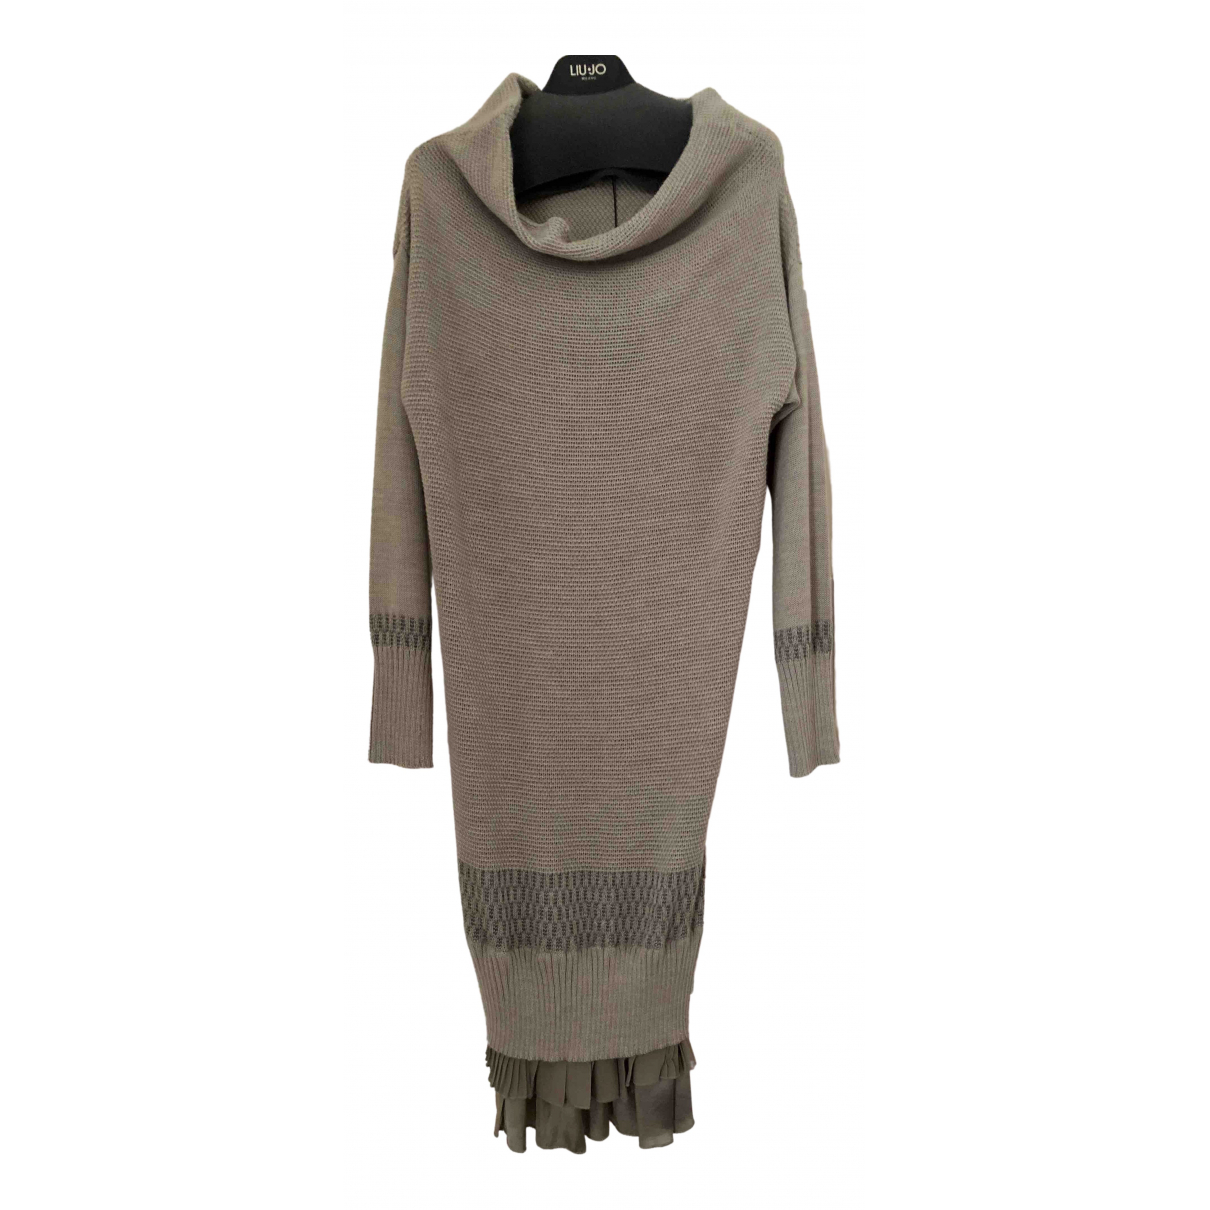 Pinko \N Wool dress for Women M International